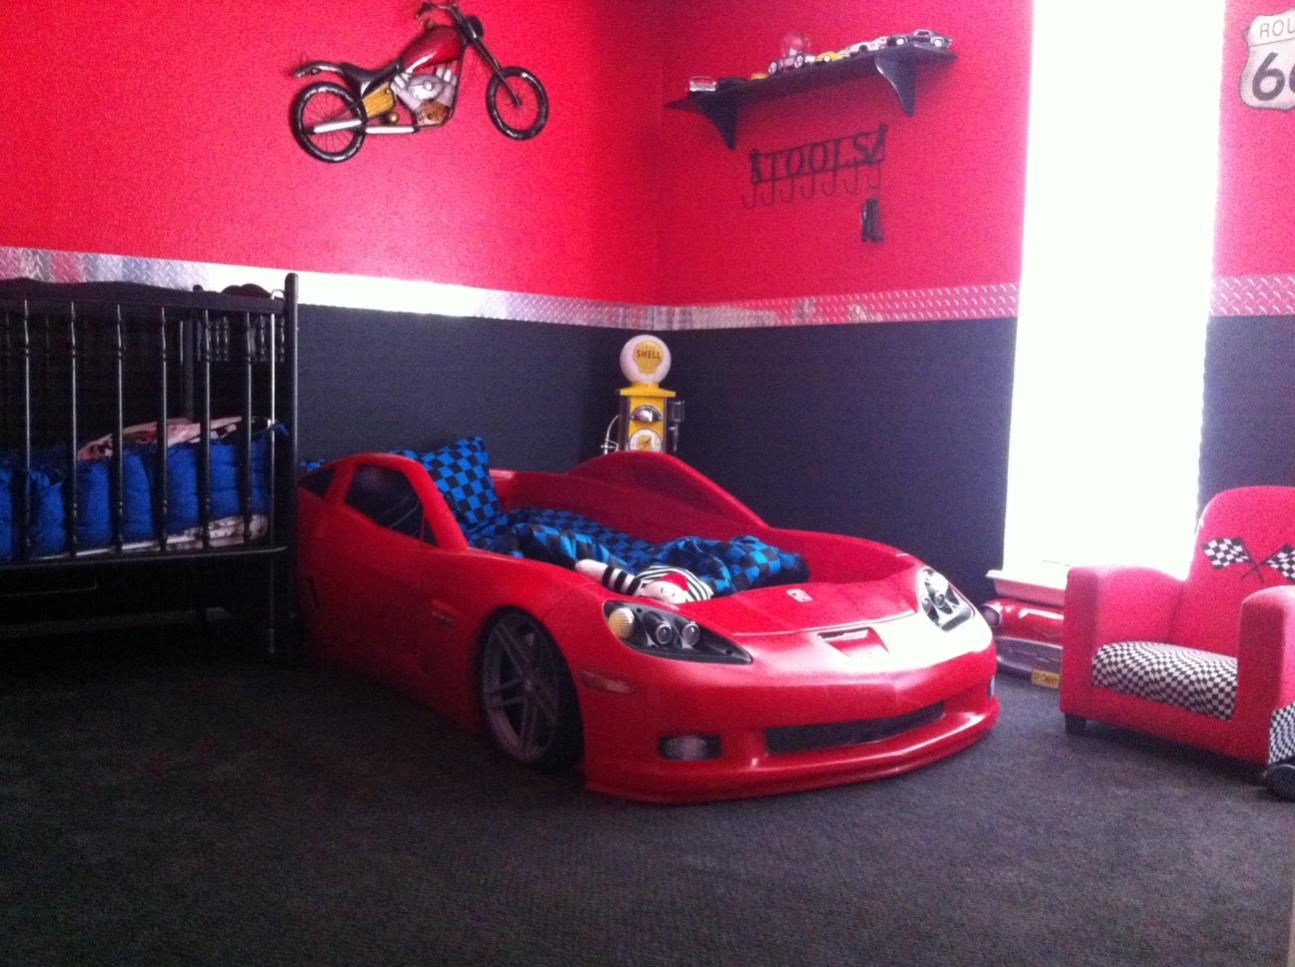 Ordinary Corvette Bedroom Set Part - 3: LEVIS ROOM? Corvette+bedding+set | Just Bought The Kid A New Corvette